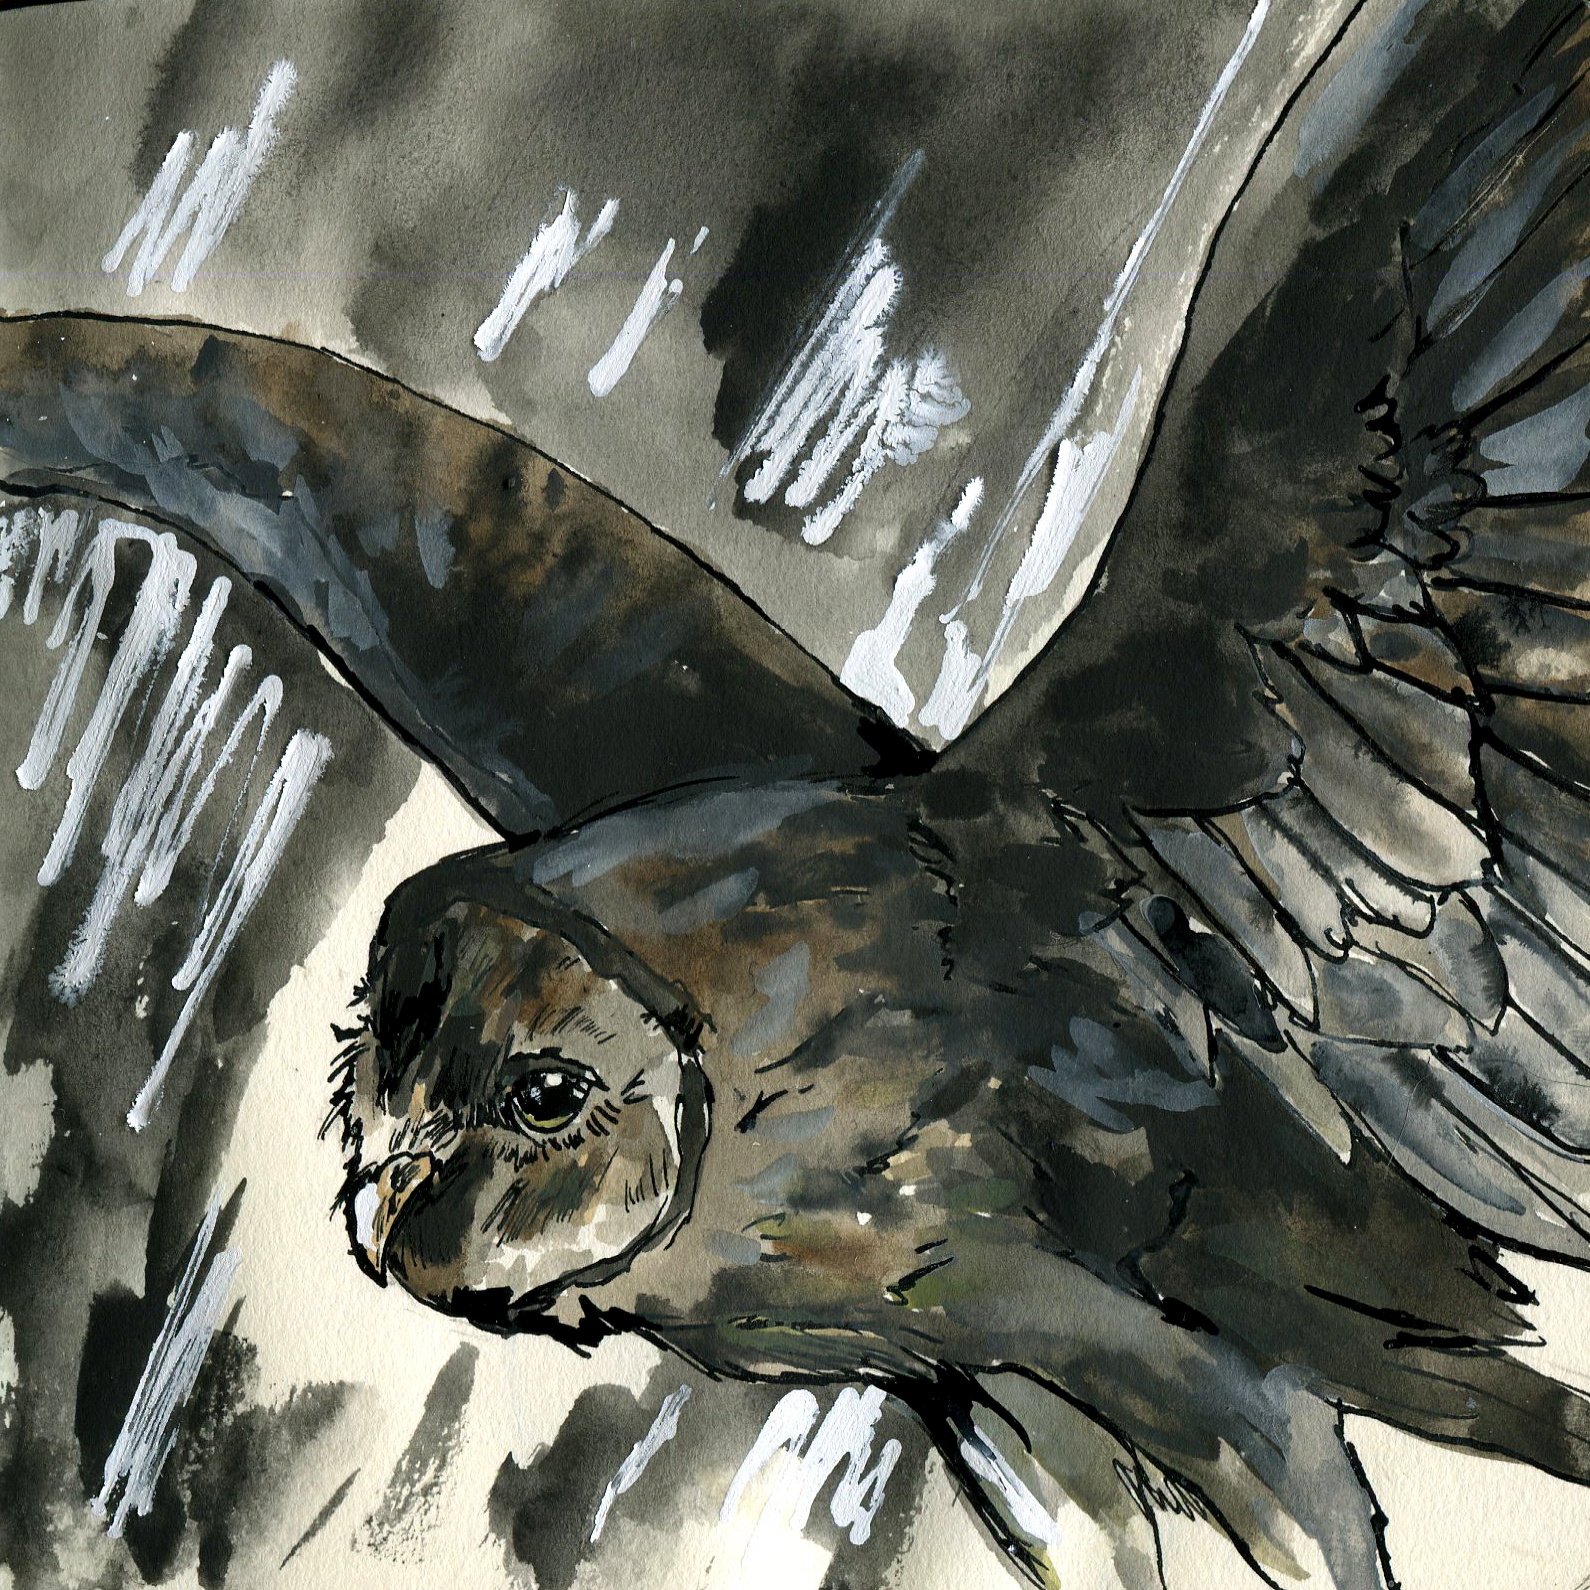 13E. Crave's Giant Barn Owl